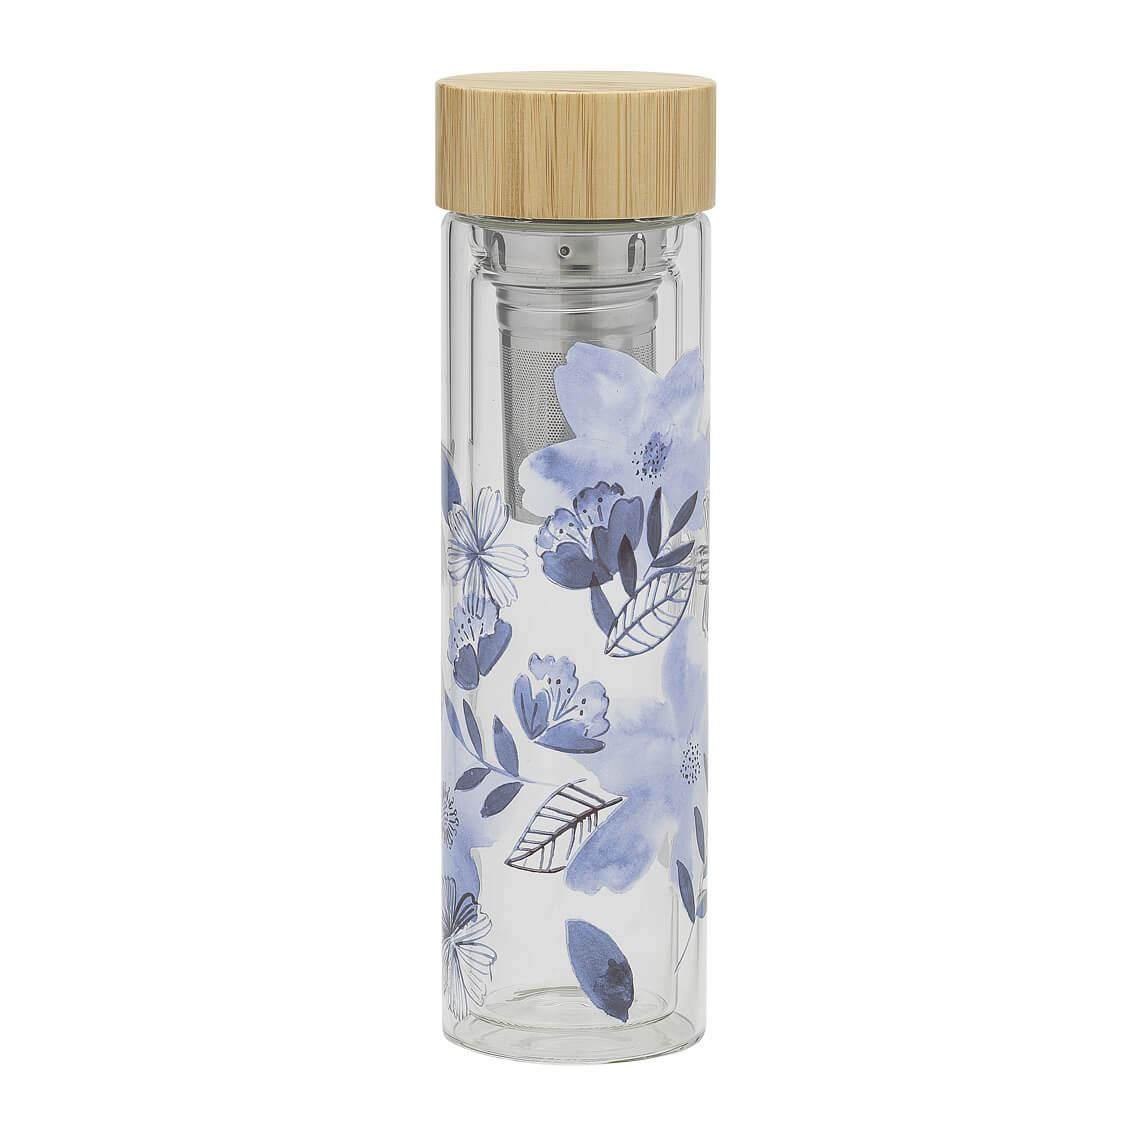 Flora L Tea Diffuser Size W 7cm x D 7cm x H 24cm in Blue Borosilicate Glass/Stainless Steel/Bamboo Lid Freedom